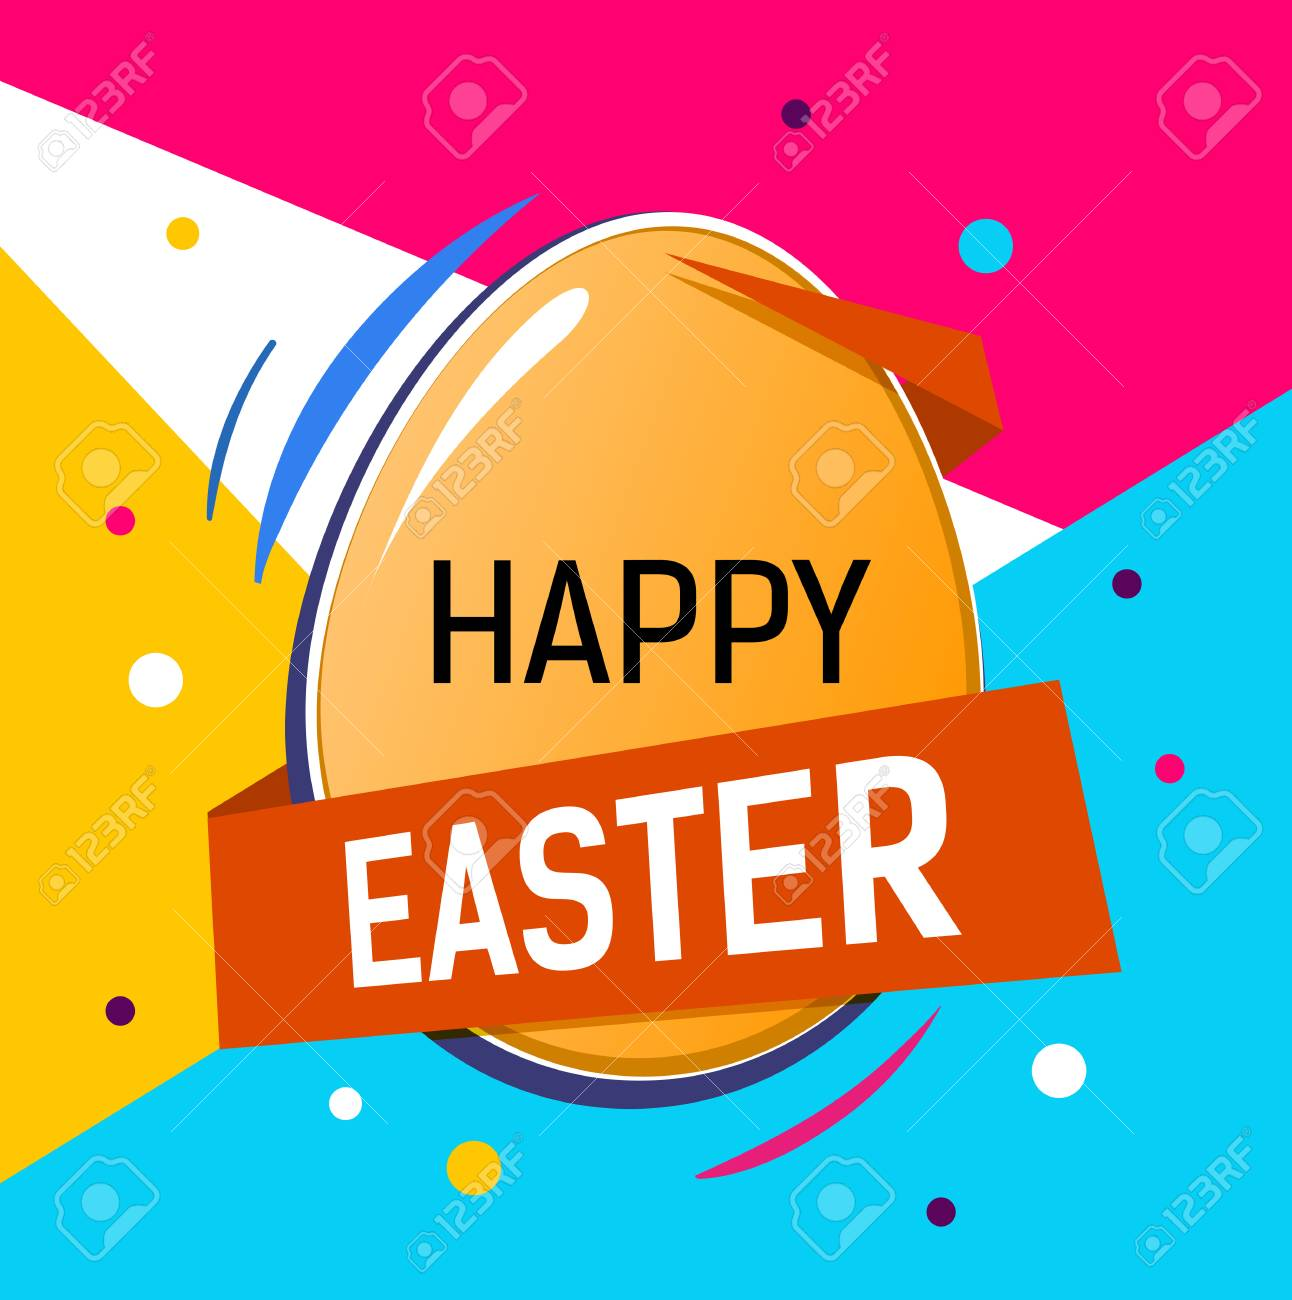 Happy easter lettering on egg easter greeting card with colorful happy easter lettering on egg easter greeting card with colorful background typed text m4hsunfo